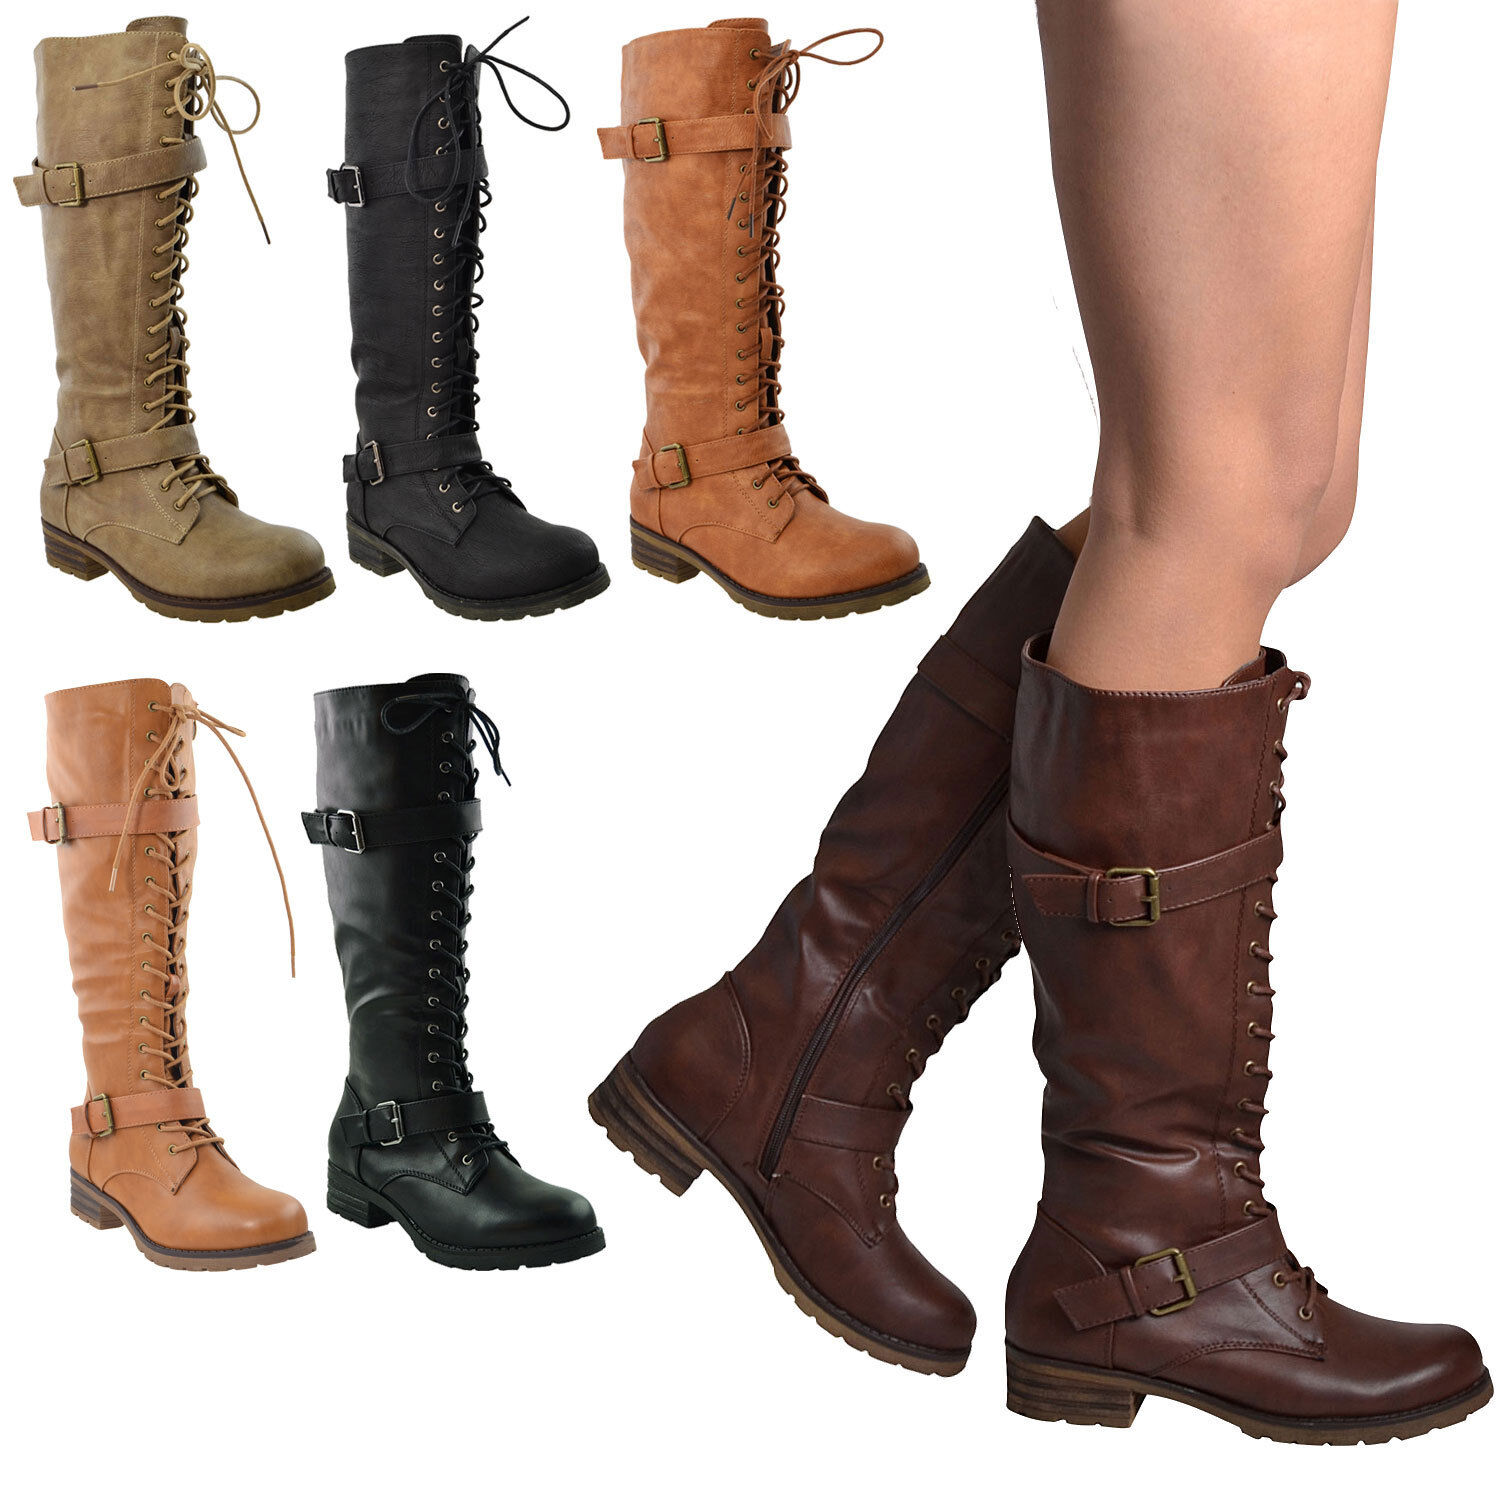 a793a7c2bed7 Details about Womens Lace Up Combat Western Leather Knee High Boots Buckle  Straps Black Tan